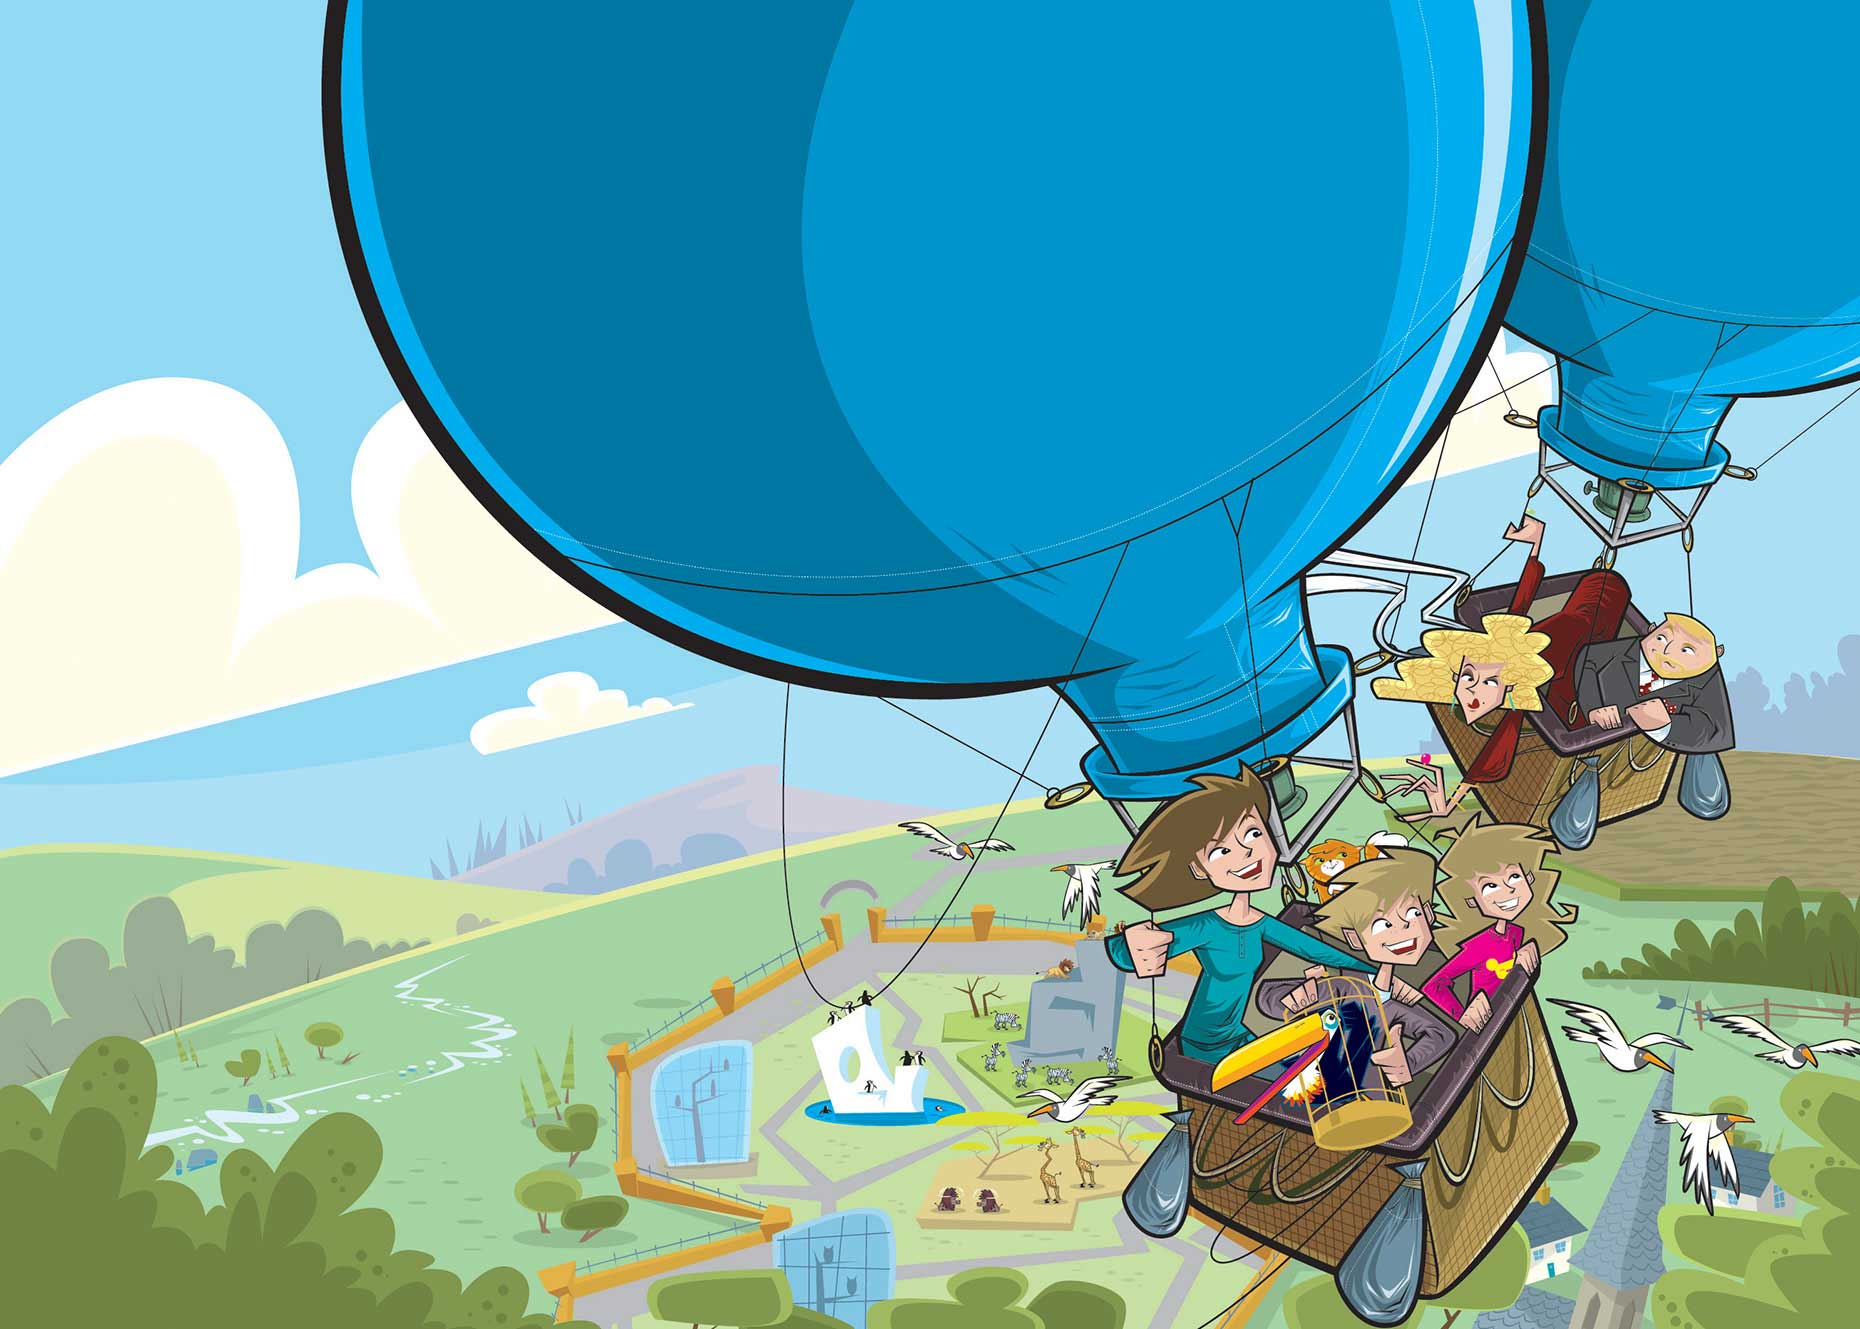 Vector-Kids-in-Balloon-floating-over-landscape